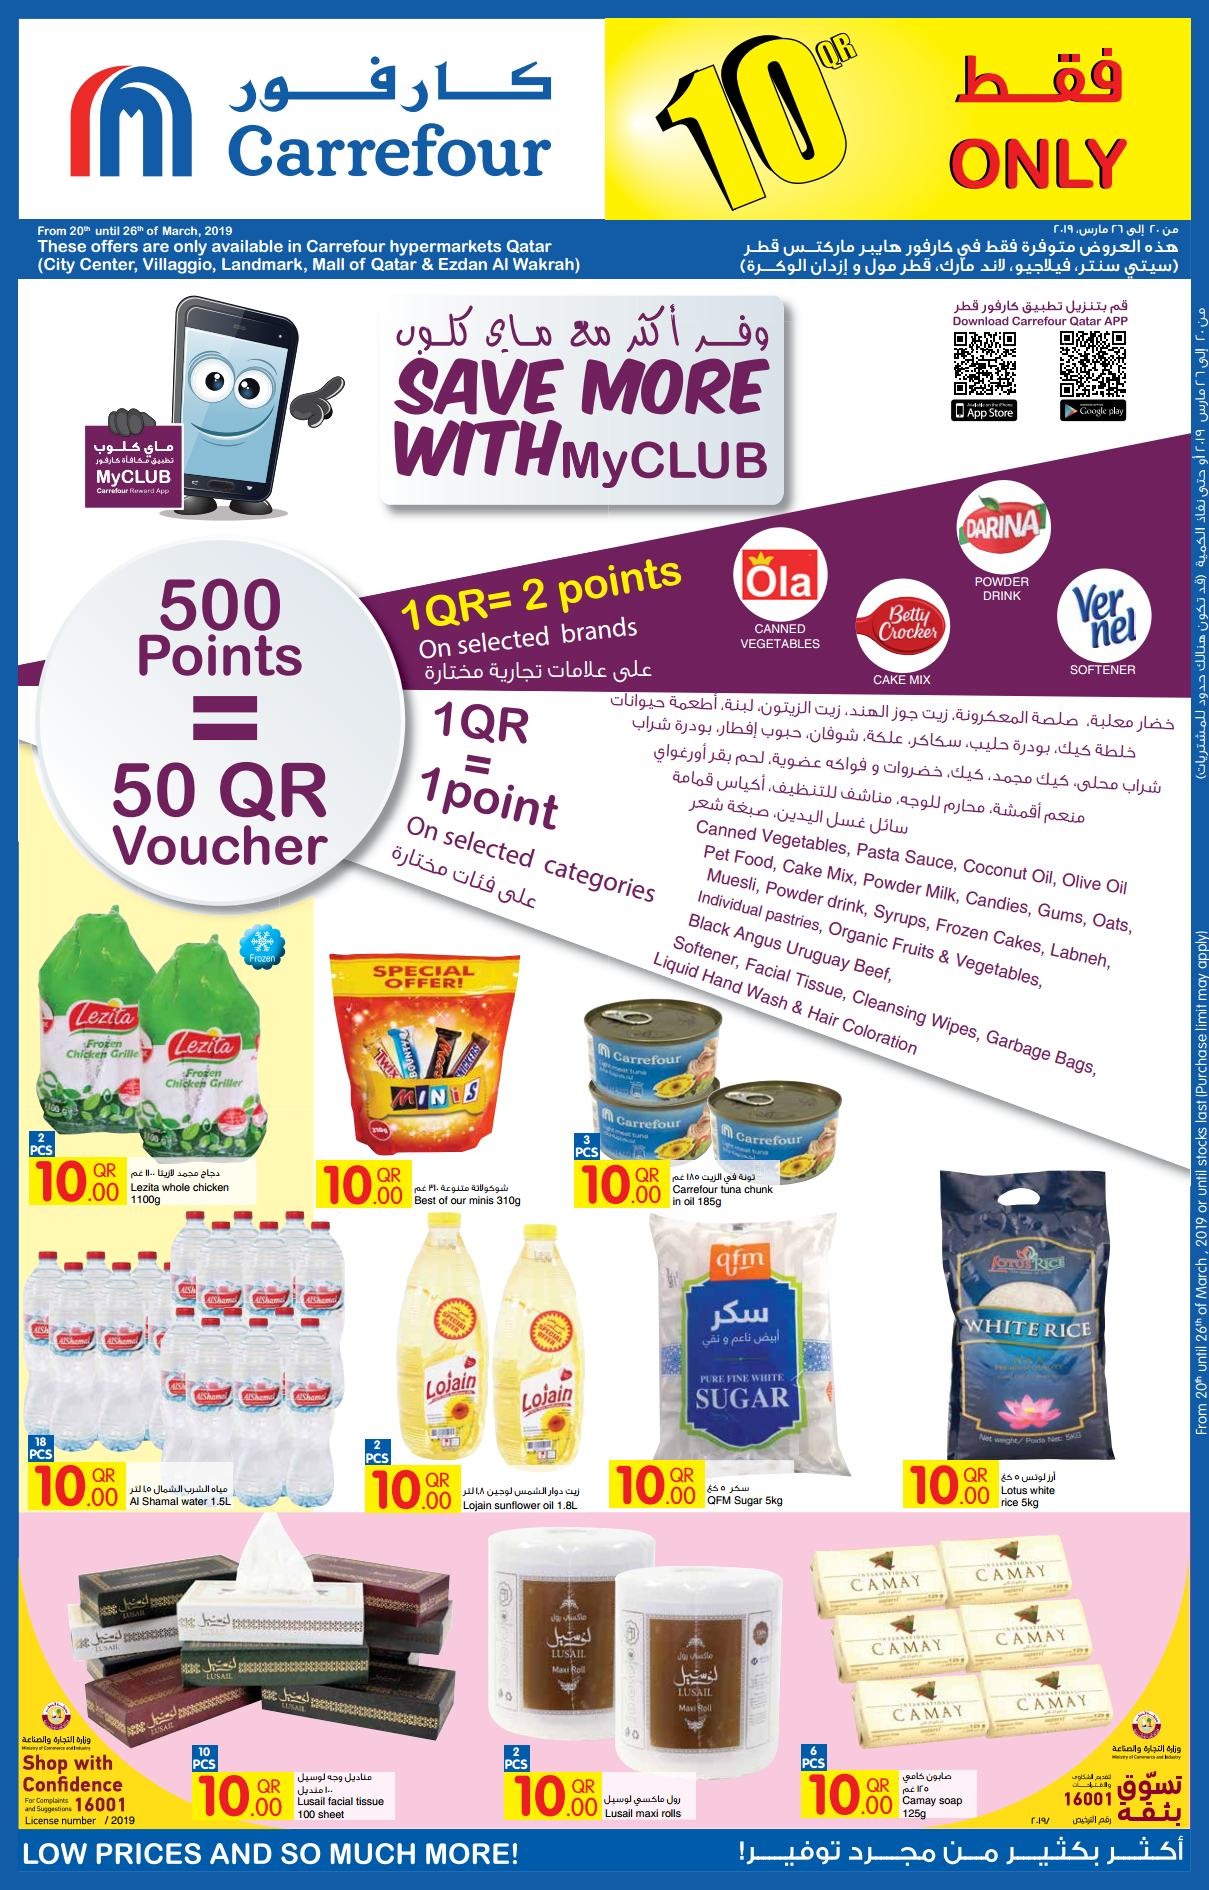 Carrefour Hyper 10QR Offer till 26-03